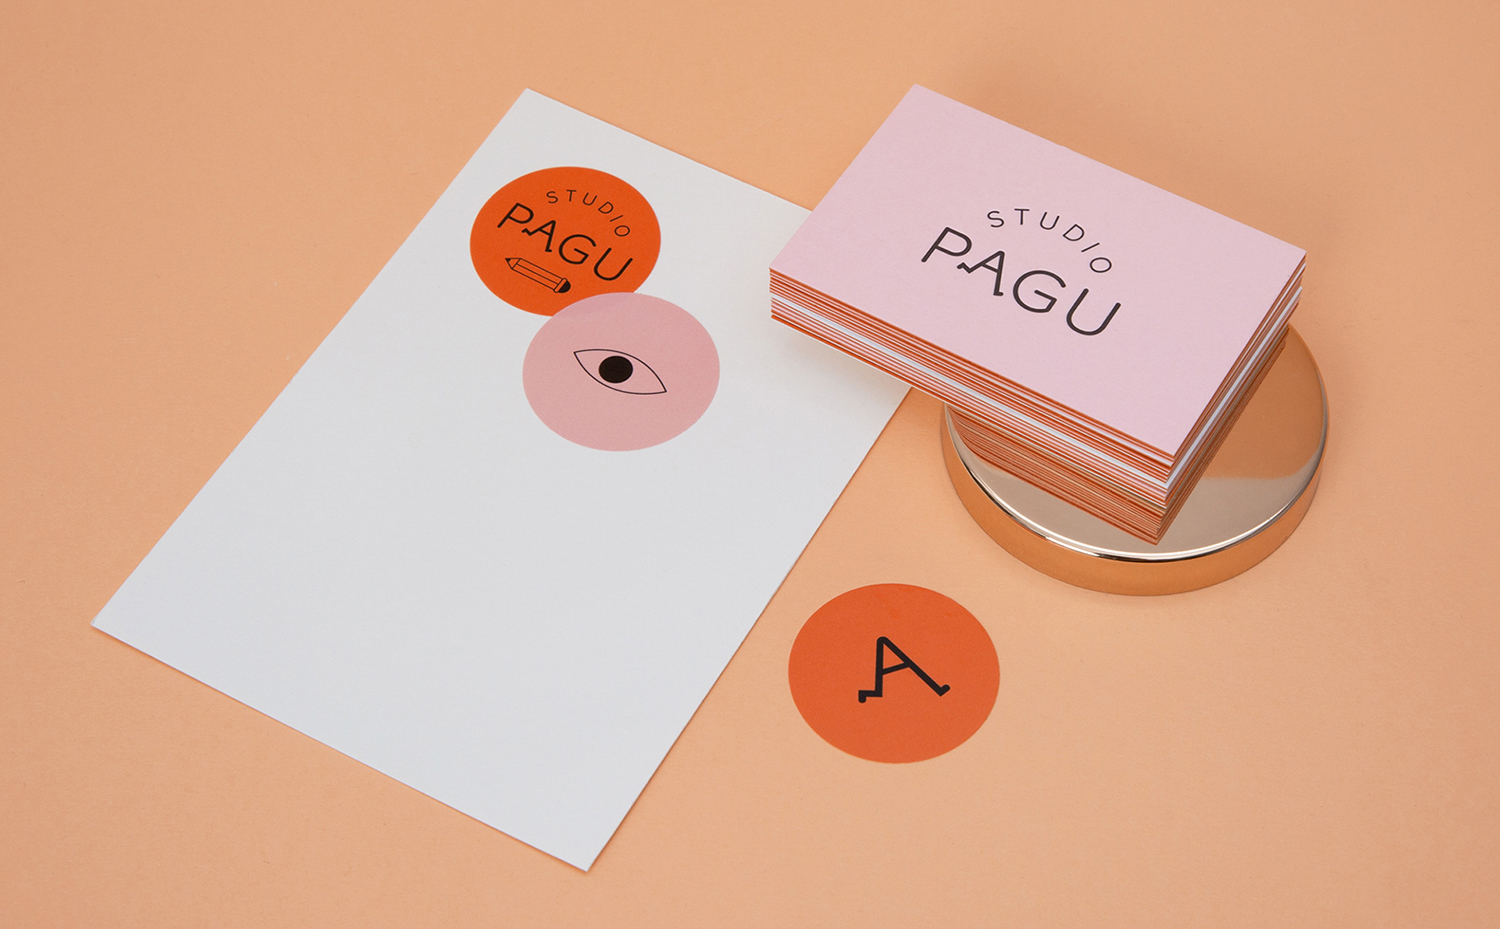 PAGU Studio stationery